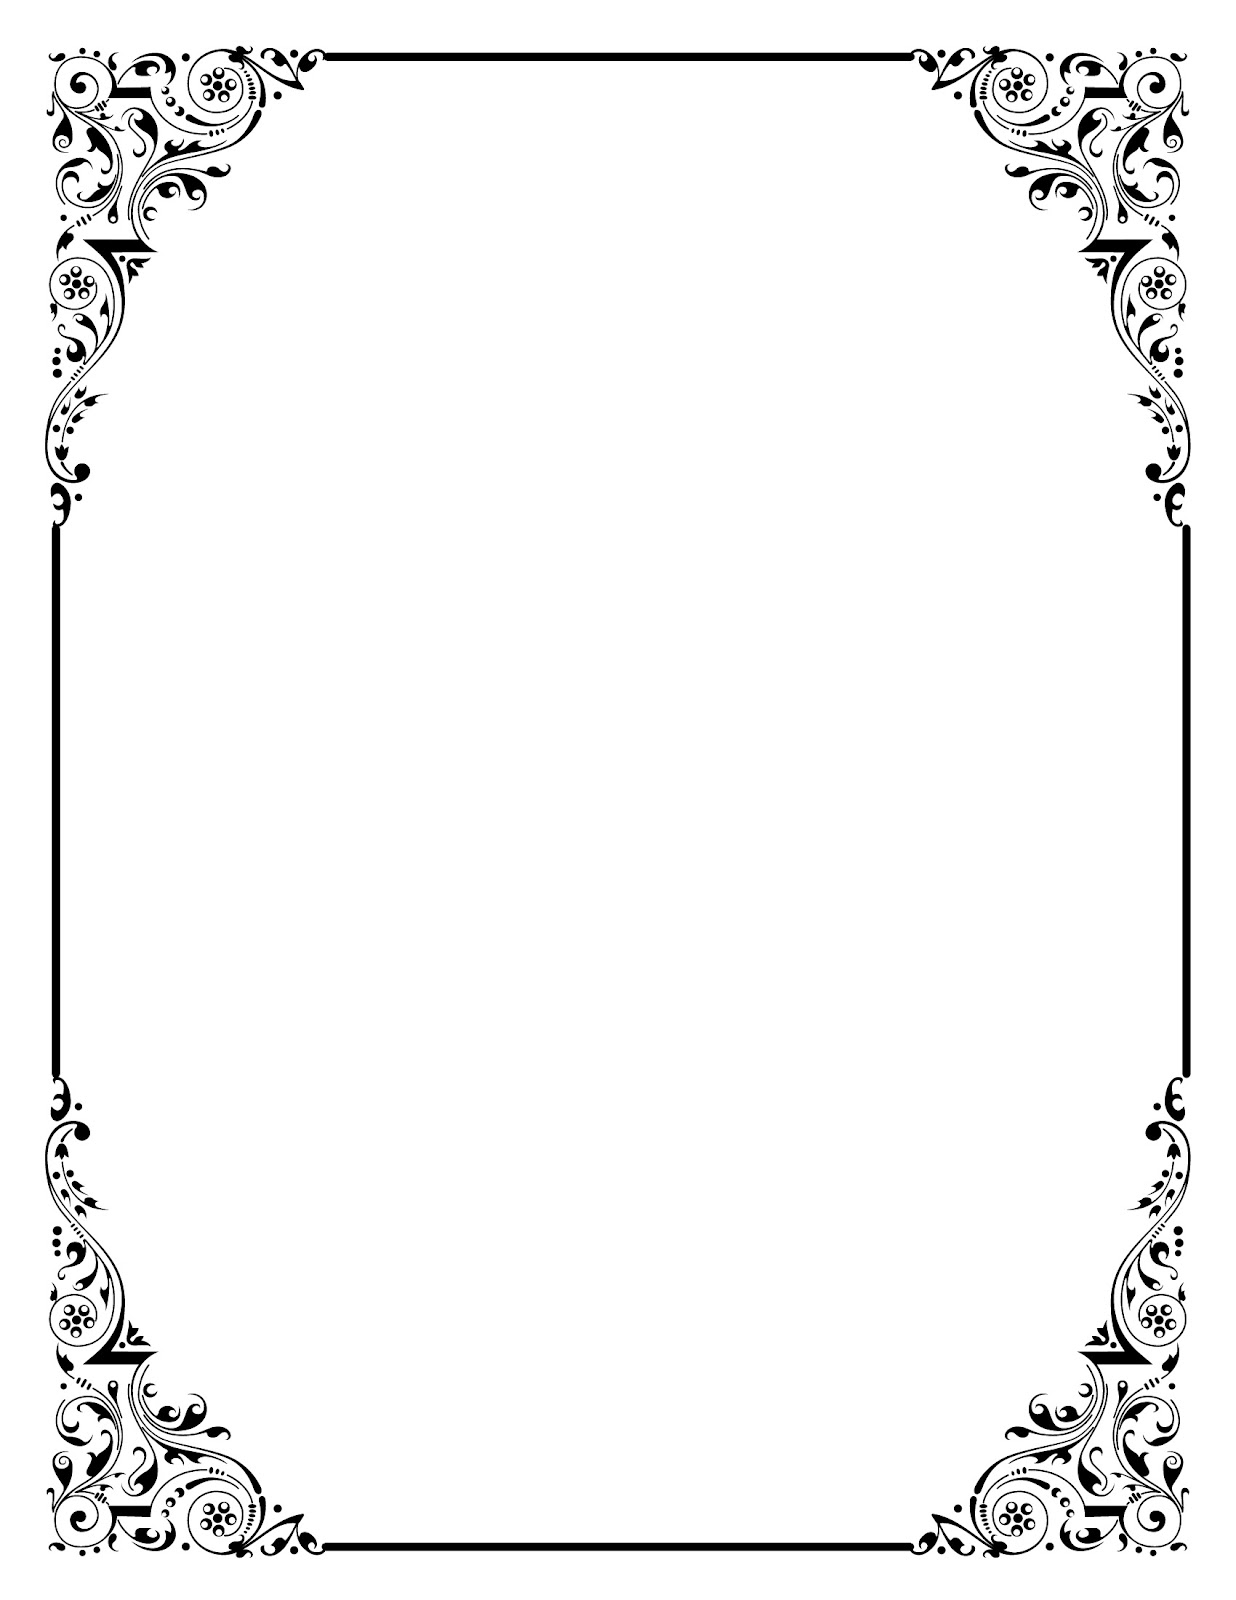 Elegant page borders clipart download 17 Best images about frame on Pinterest | Clip art, Graphics and ... download